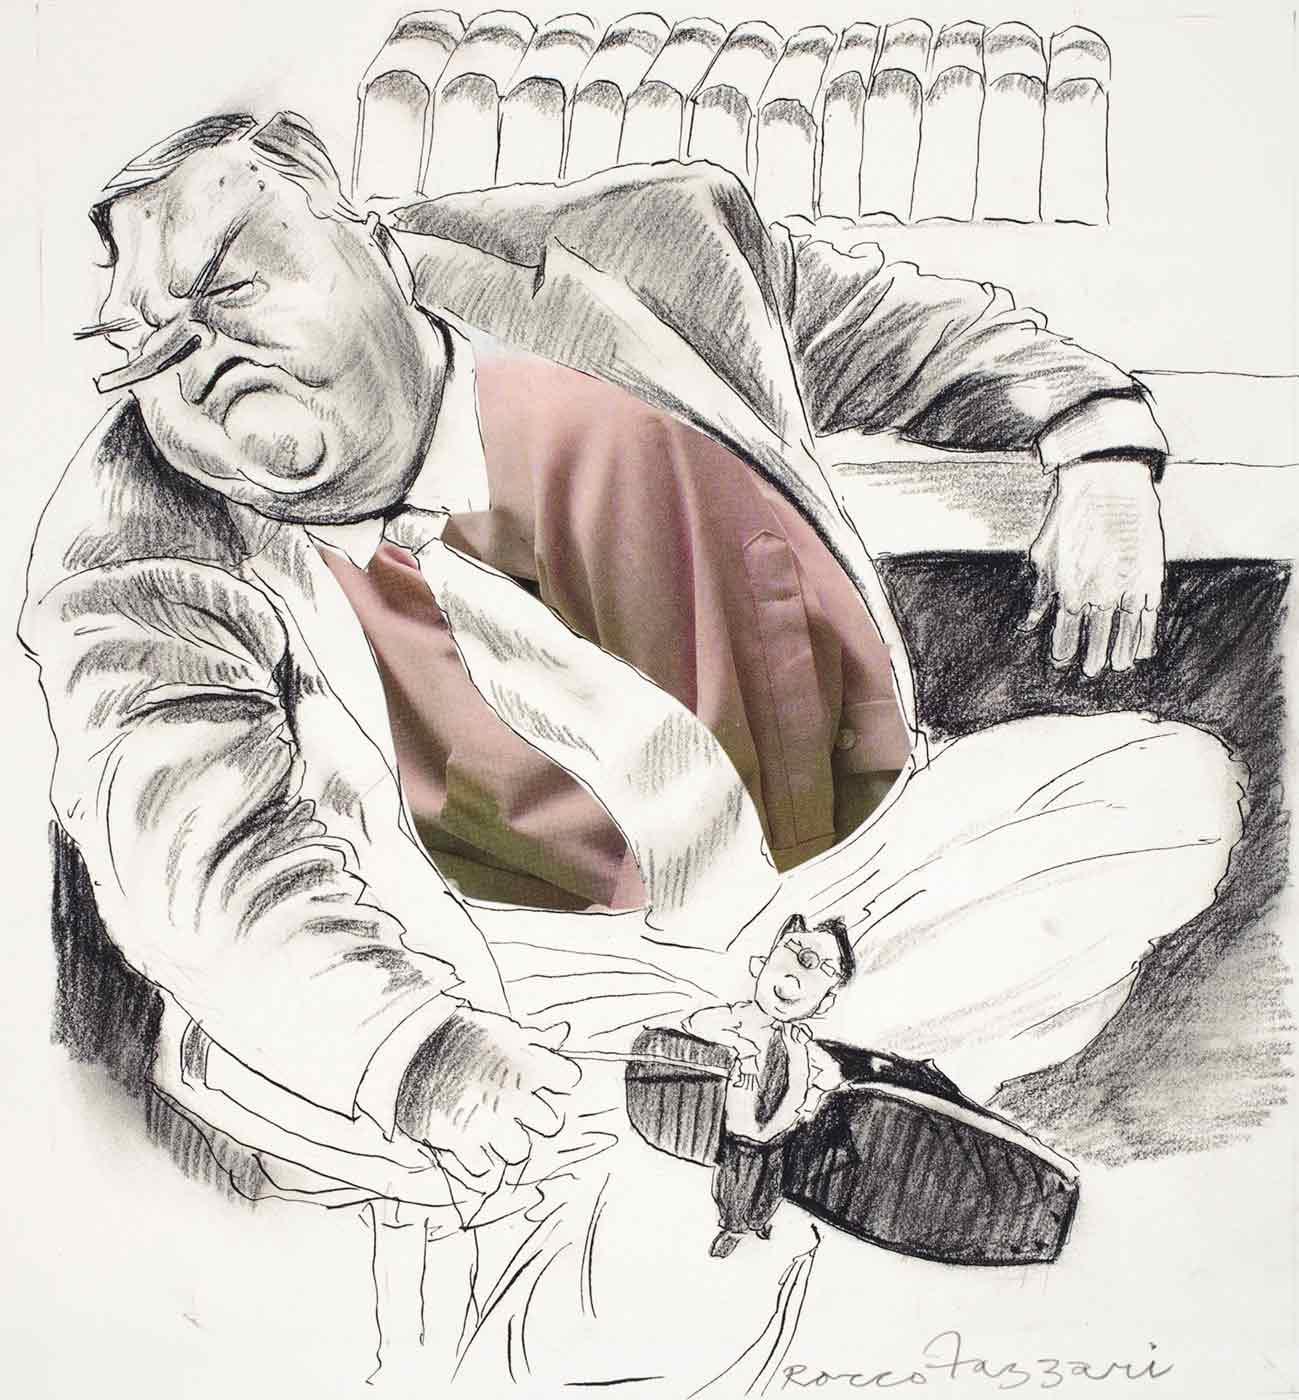 Cartoon of Labor party leader Kim Beazley removing a miniature Mark Latham from the sole of his shoe with a stick. - click to view larger image